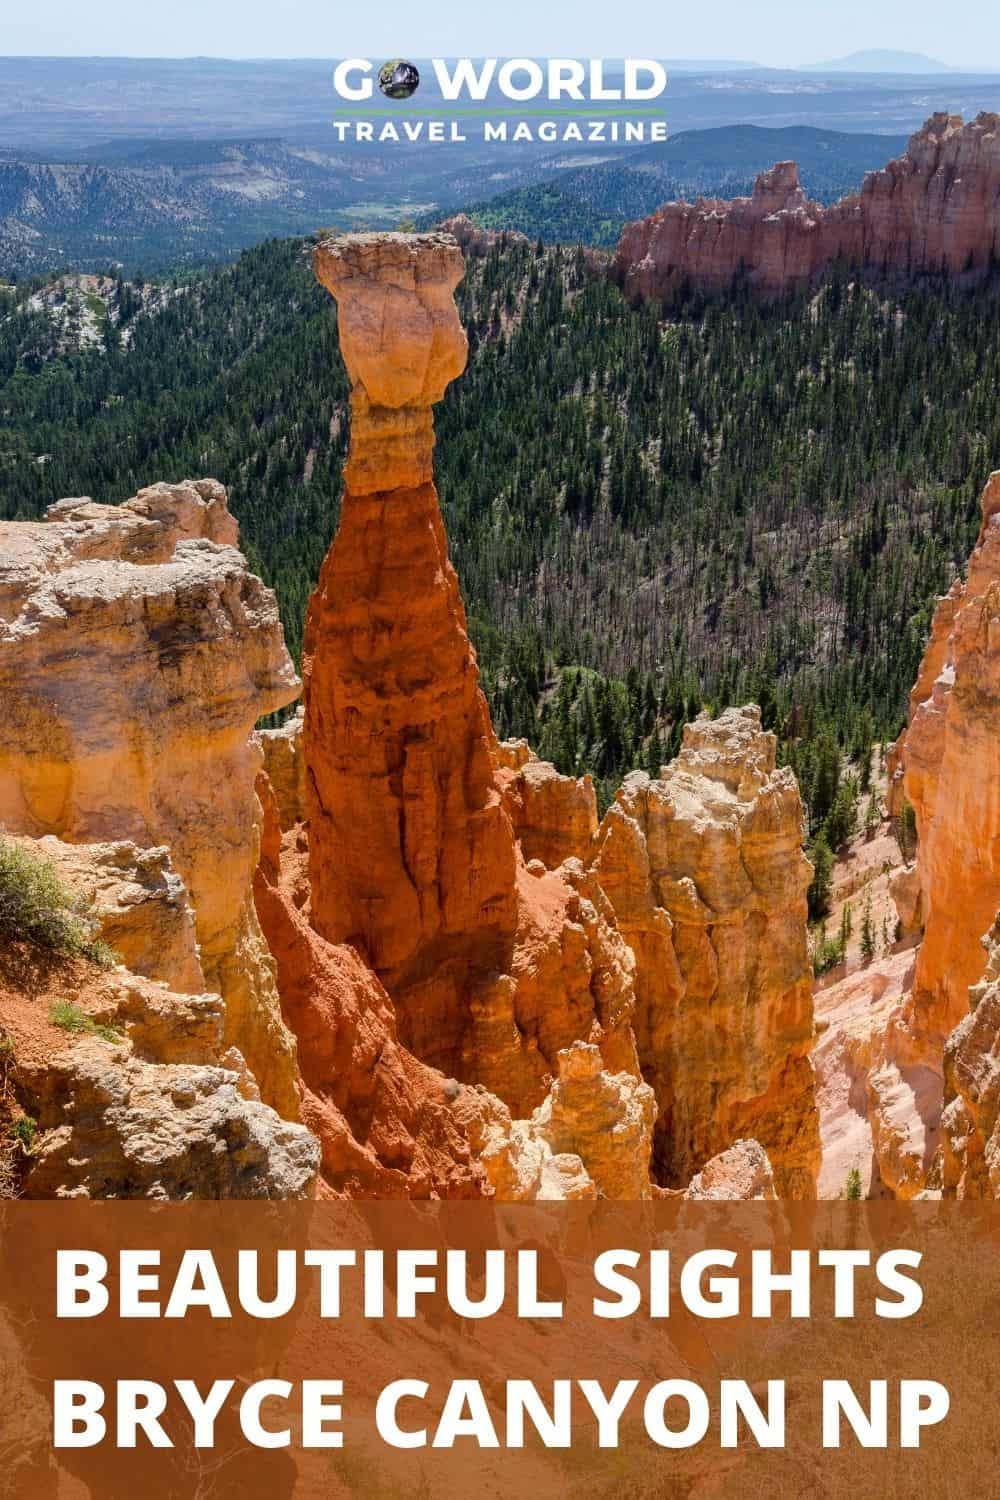 One day in Bryce Canyon National Park isn't enough to see everything. But if you follow this route you'll be sure to see the top park sights. #nationalparksusa #brycecanyonnp #brycecanyonutah